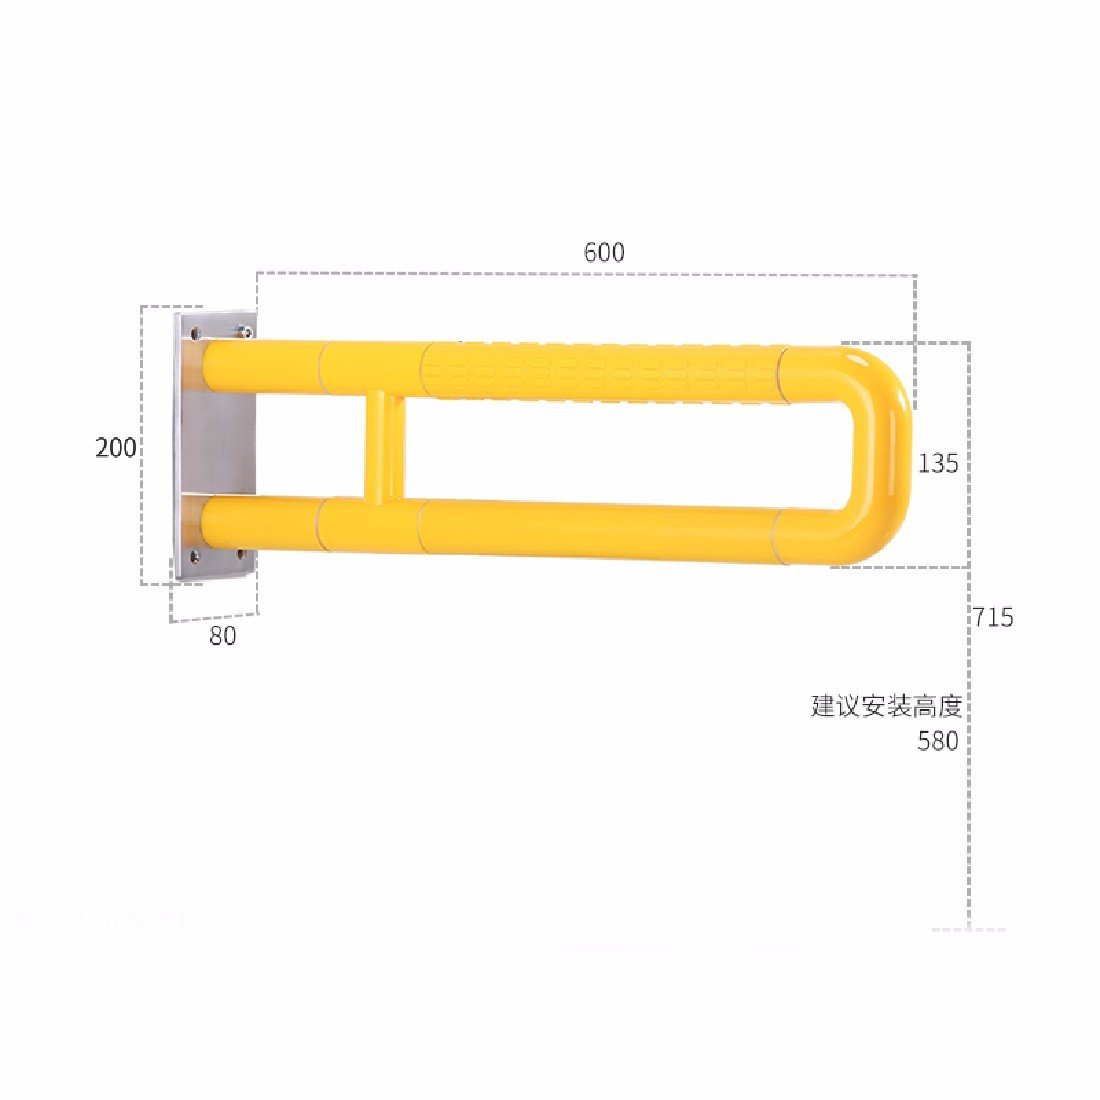 WAWZJ-Handrail Barrier Free Handrail Disabled Person'S Shelf Old Man'S Toilet Toilet Antiskid Handle,Yellow,60Cm